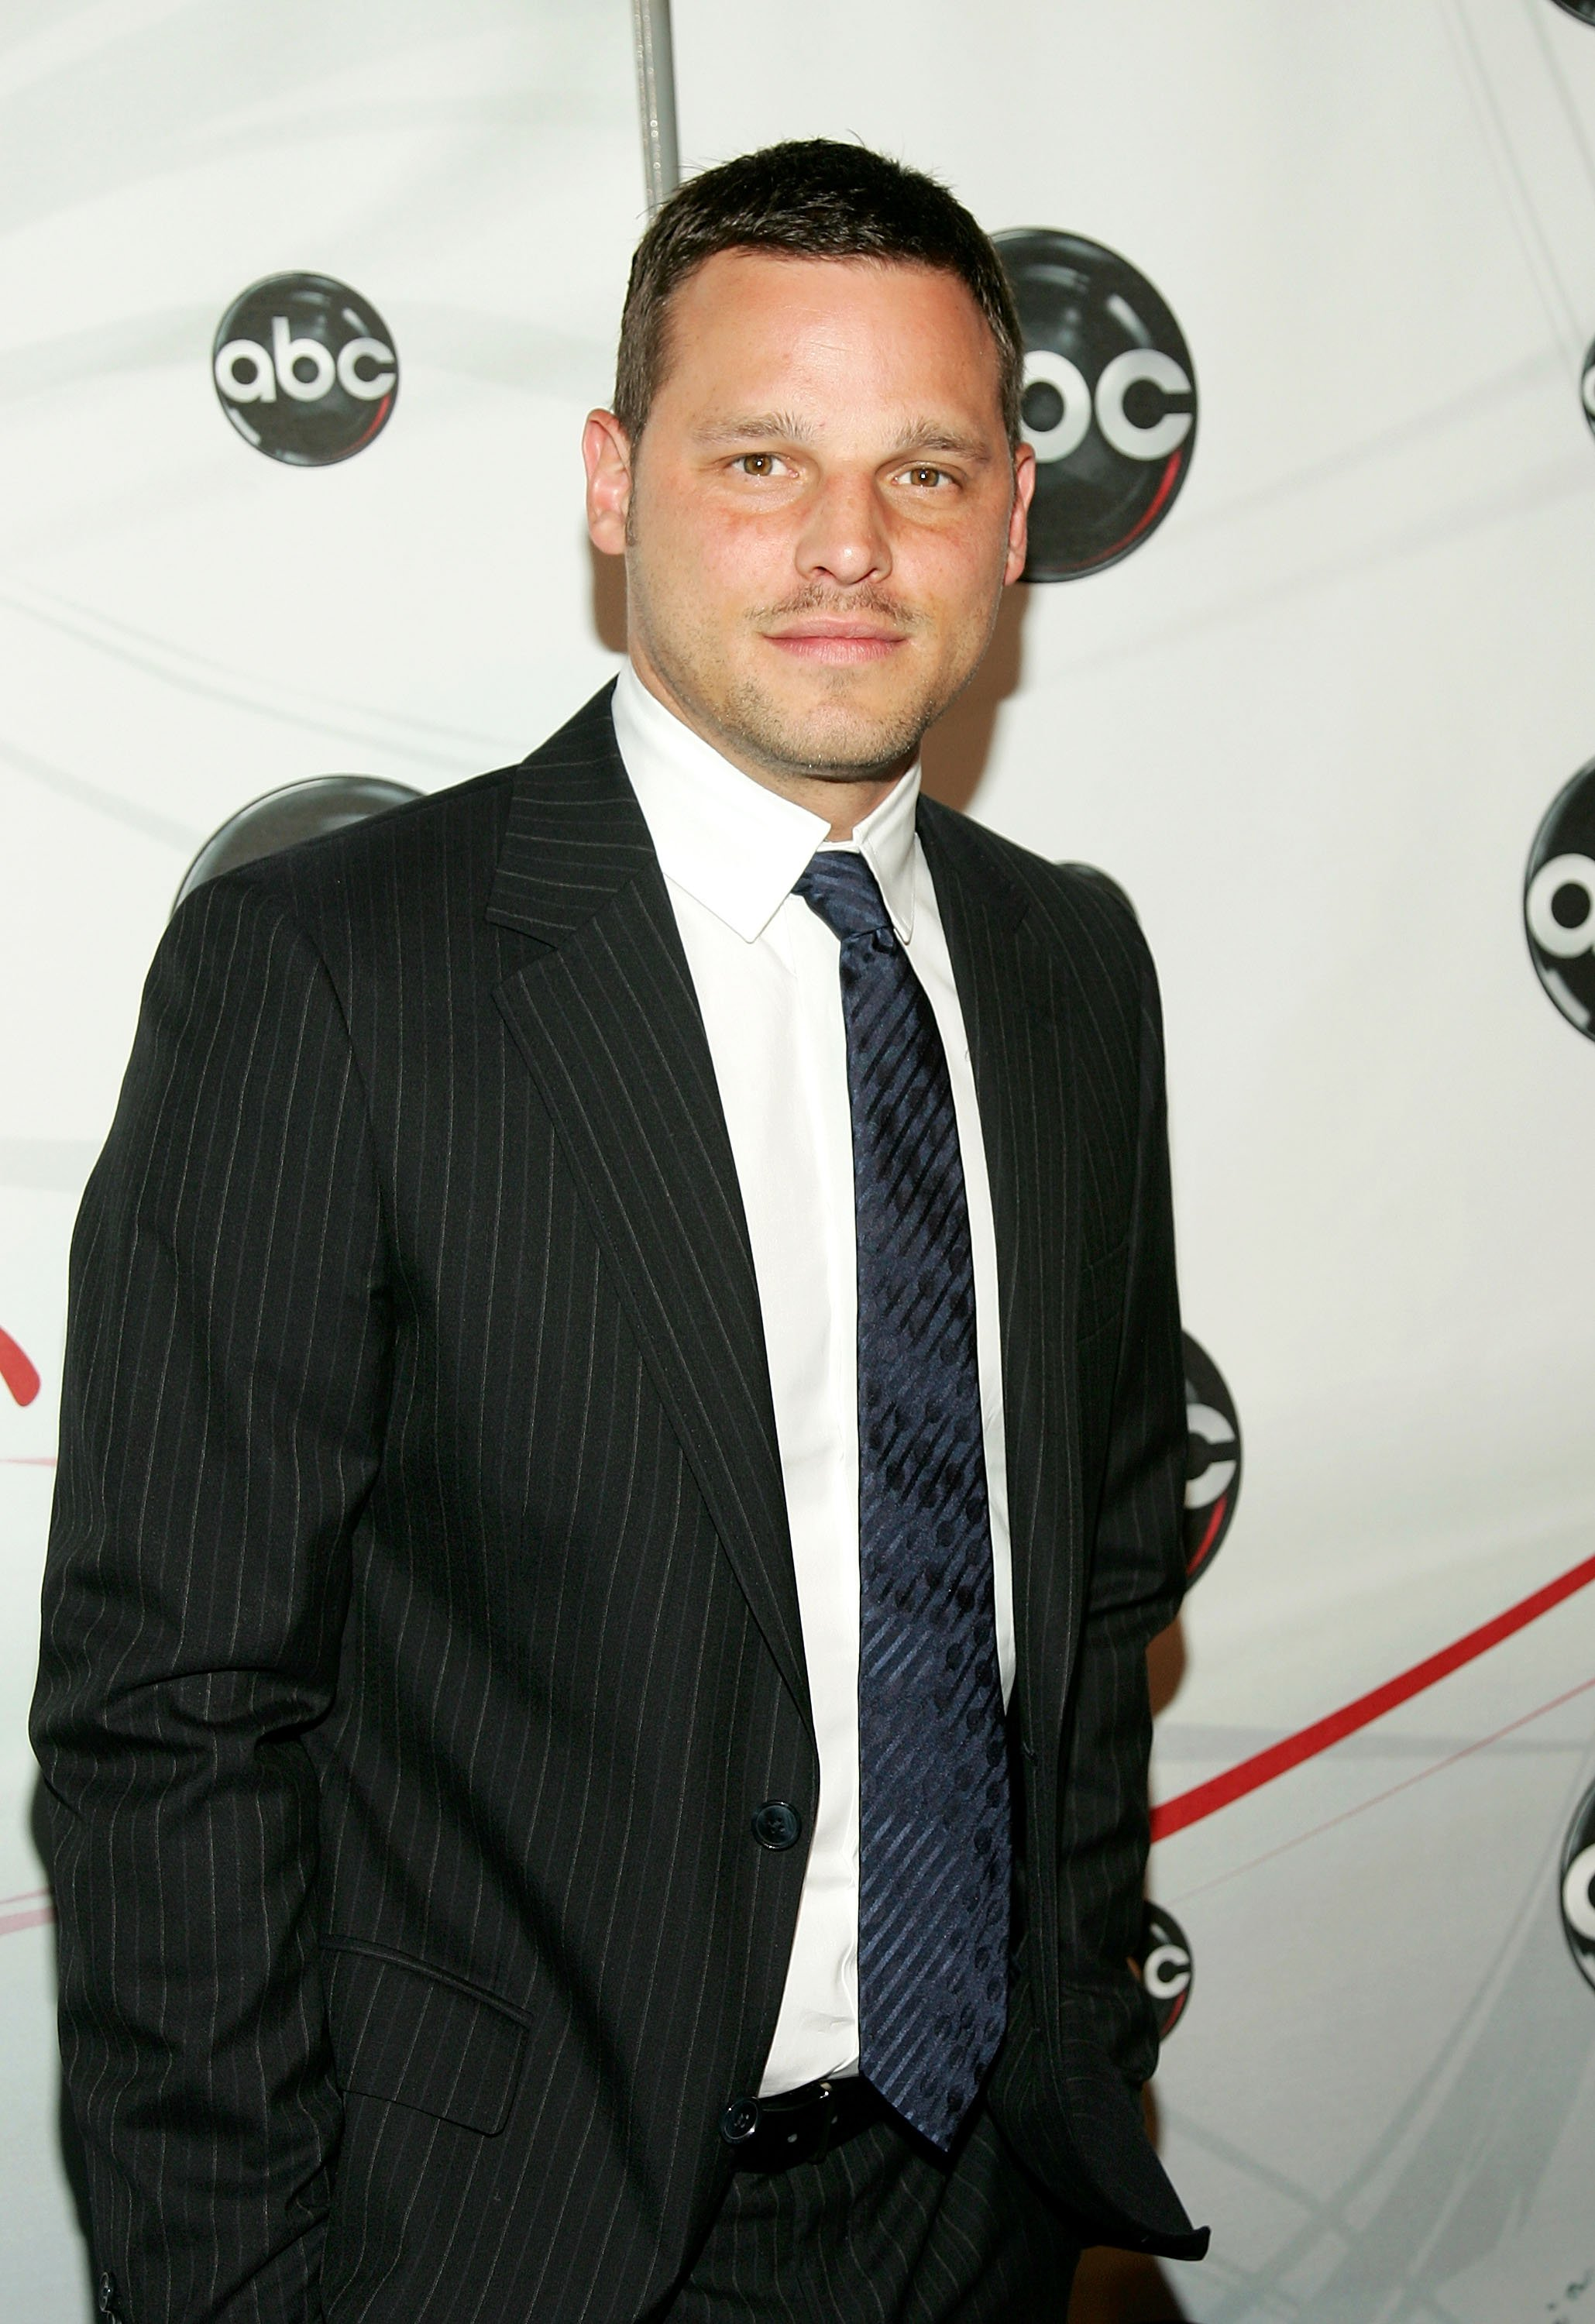 Justin Chambers attends the ABC Upfront presentation at Lincoln Center on May 15, 2007, in New York City. | Source: Getty Images.